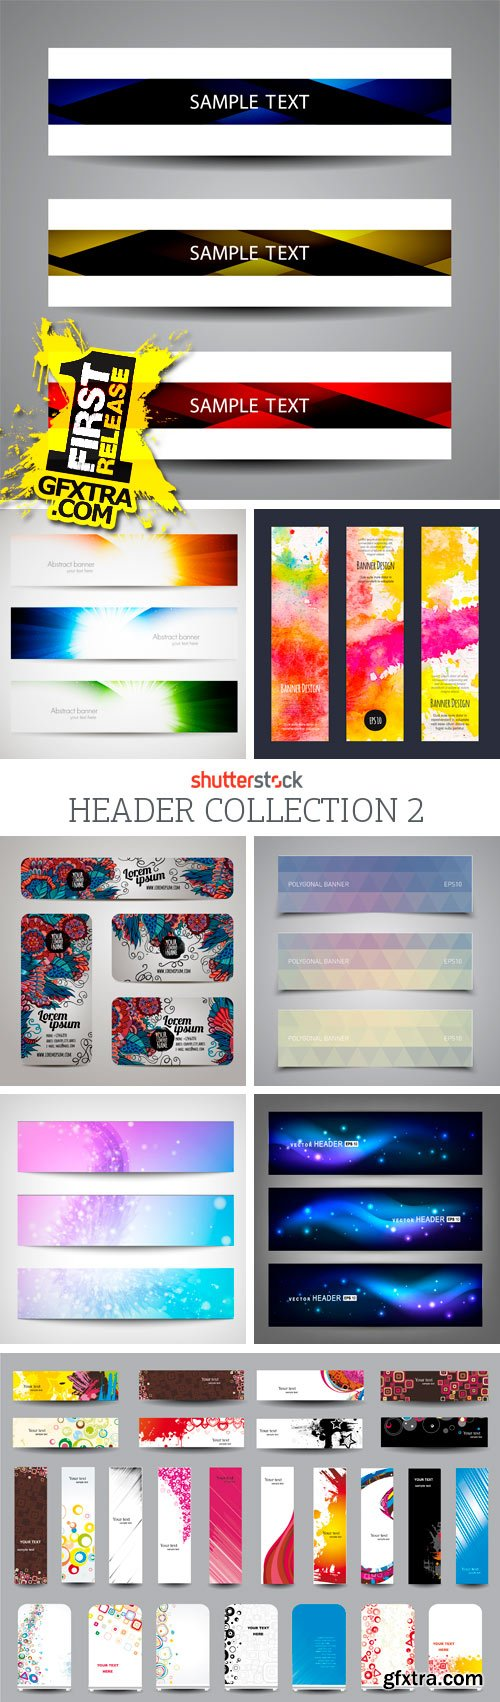 Amazing SS - Header Collection 2, 25xEPS